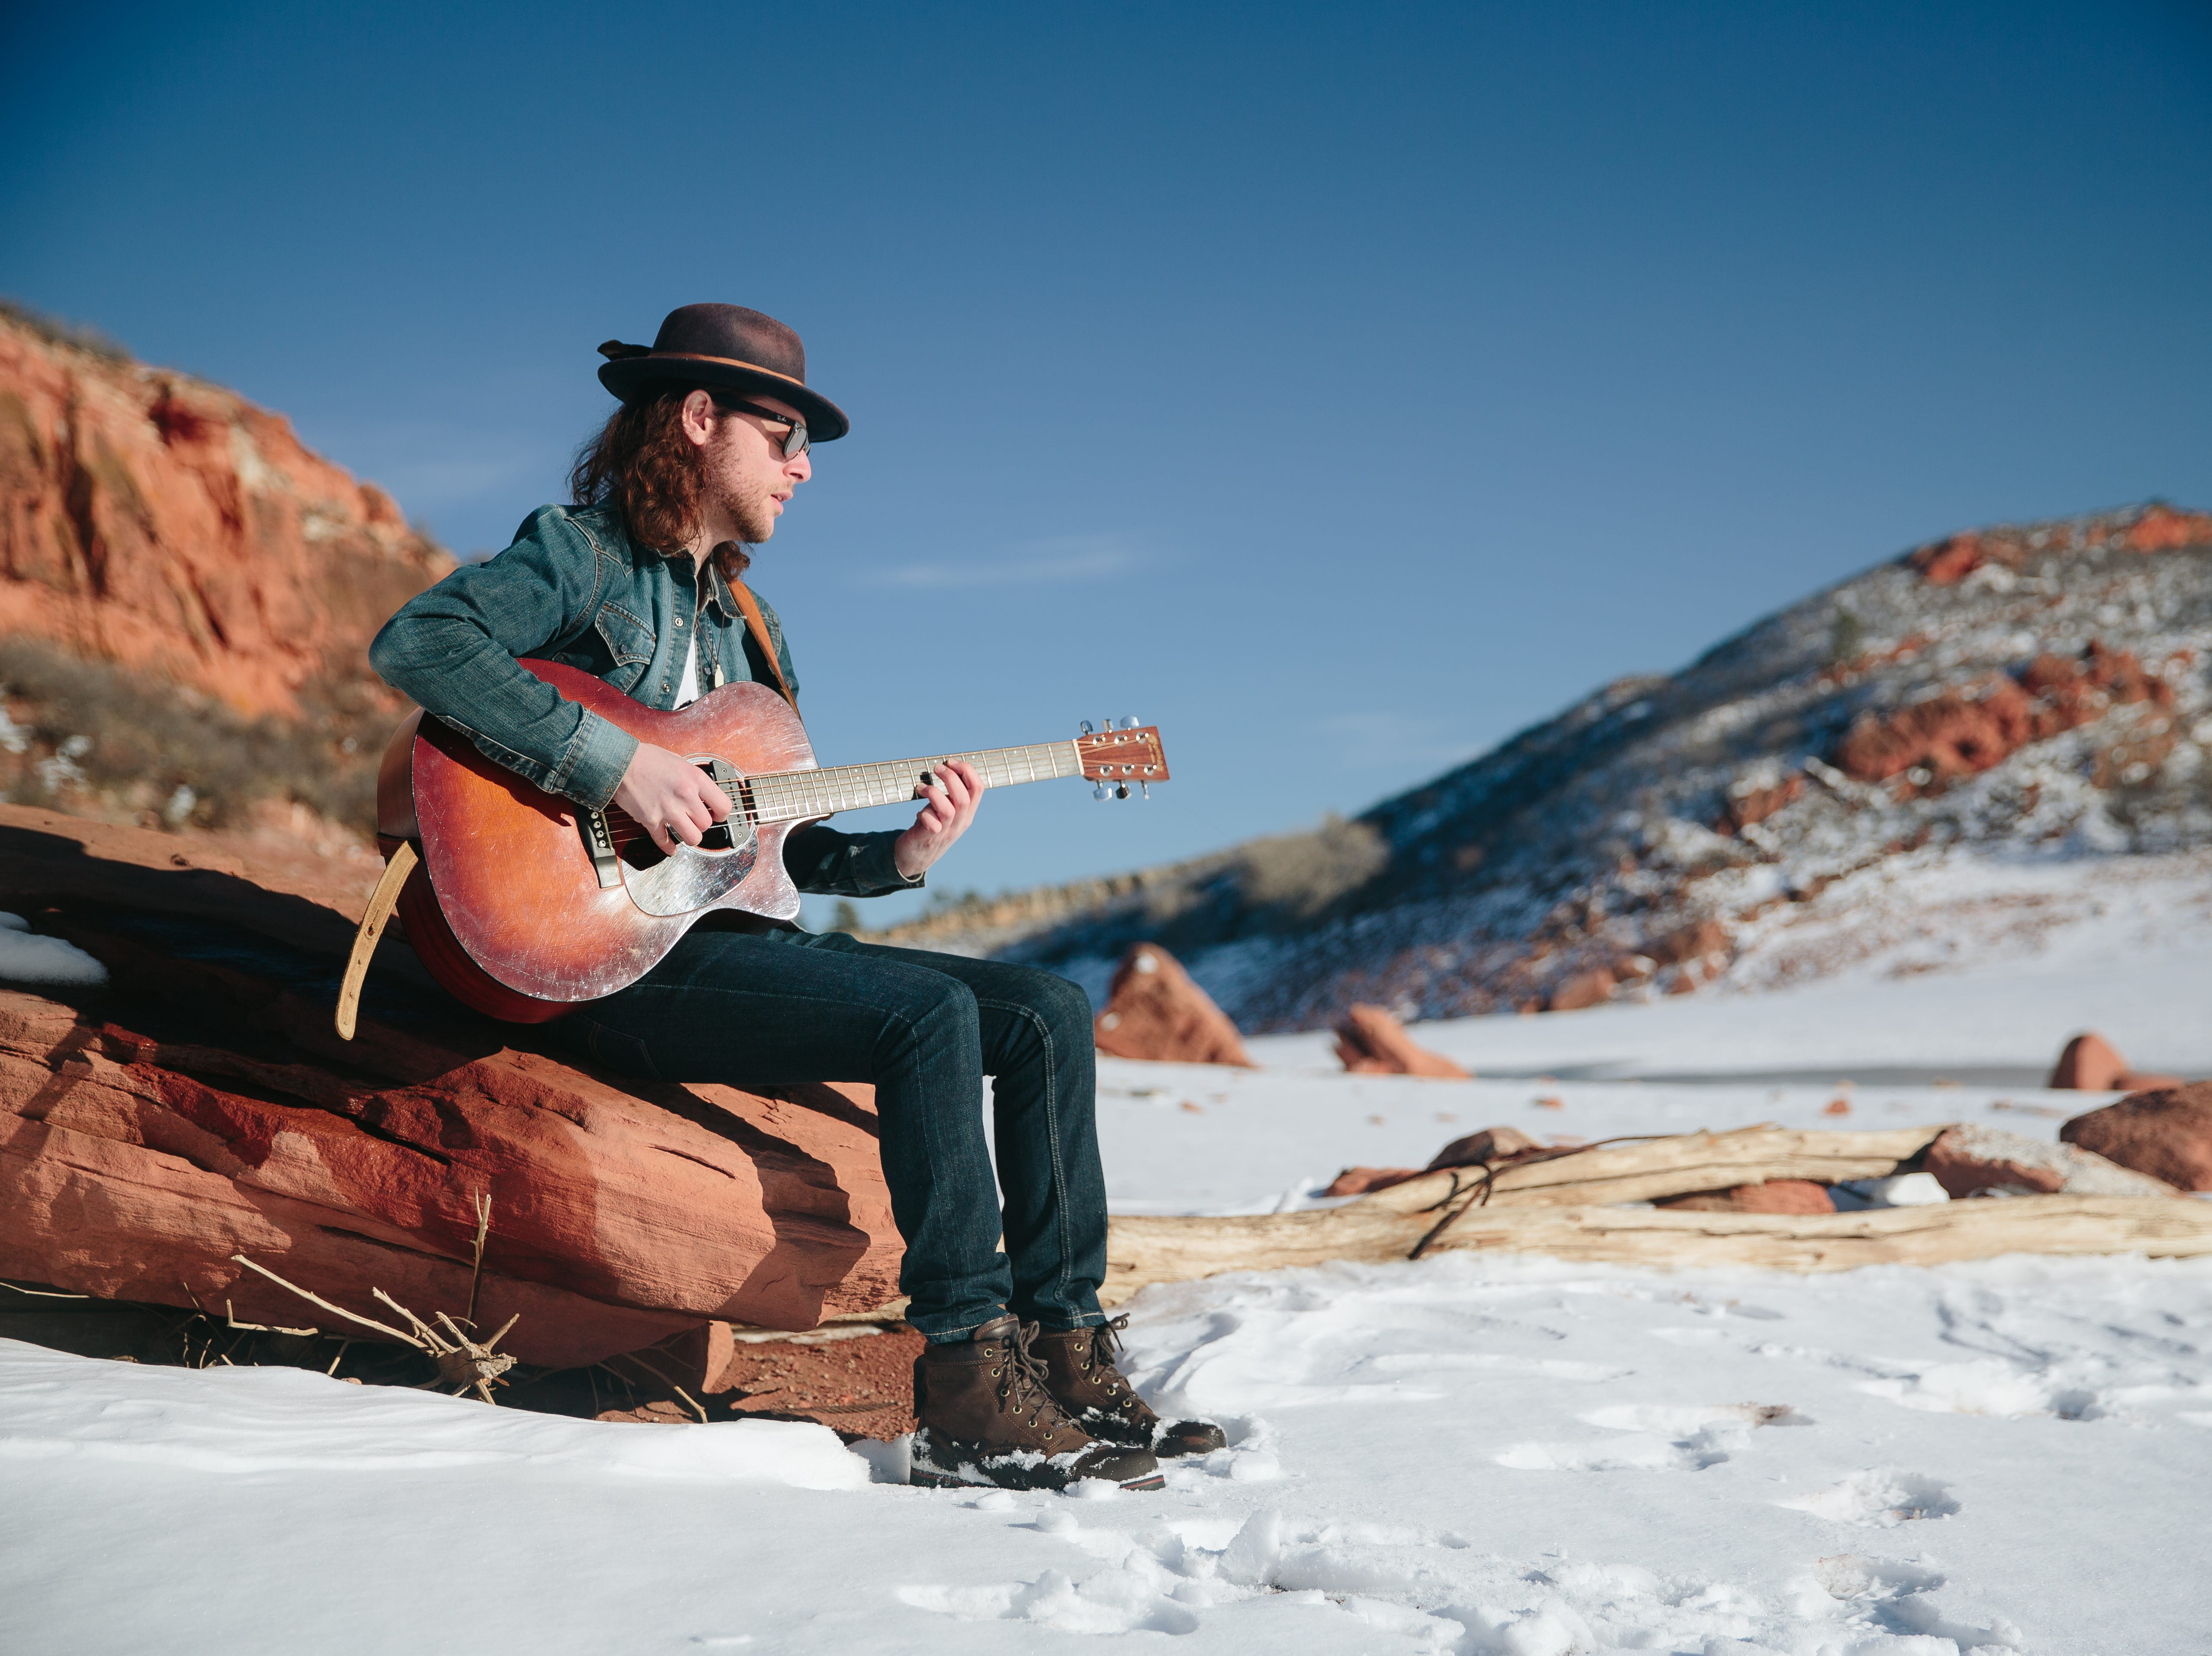 """Beni Brosh: Live music from this Colorado-based, Americana songwriter in support of the release of his latest album """"Hole Hearted, 8 p.m. Saturday, May 25, Vagabond Brewing, 2195 Hyacinth St. NE #172."""